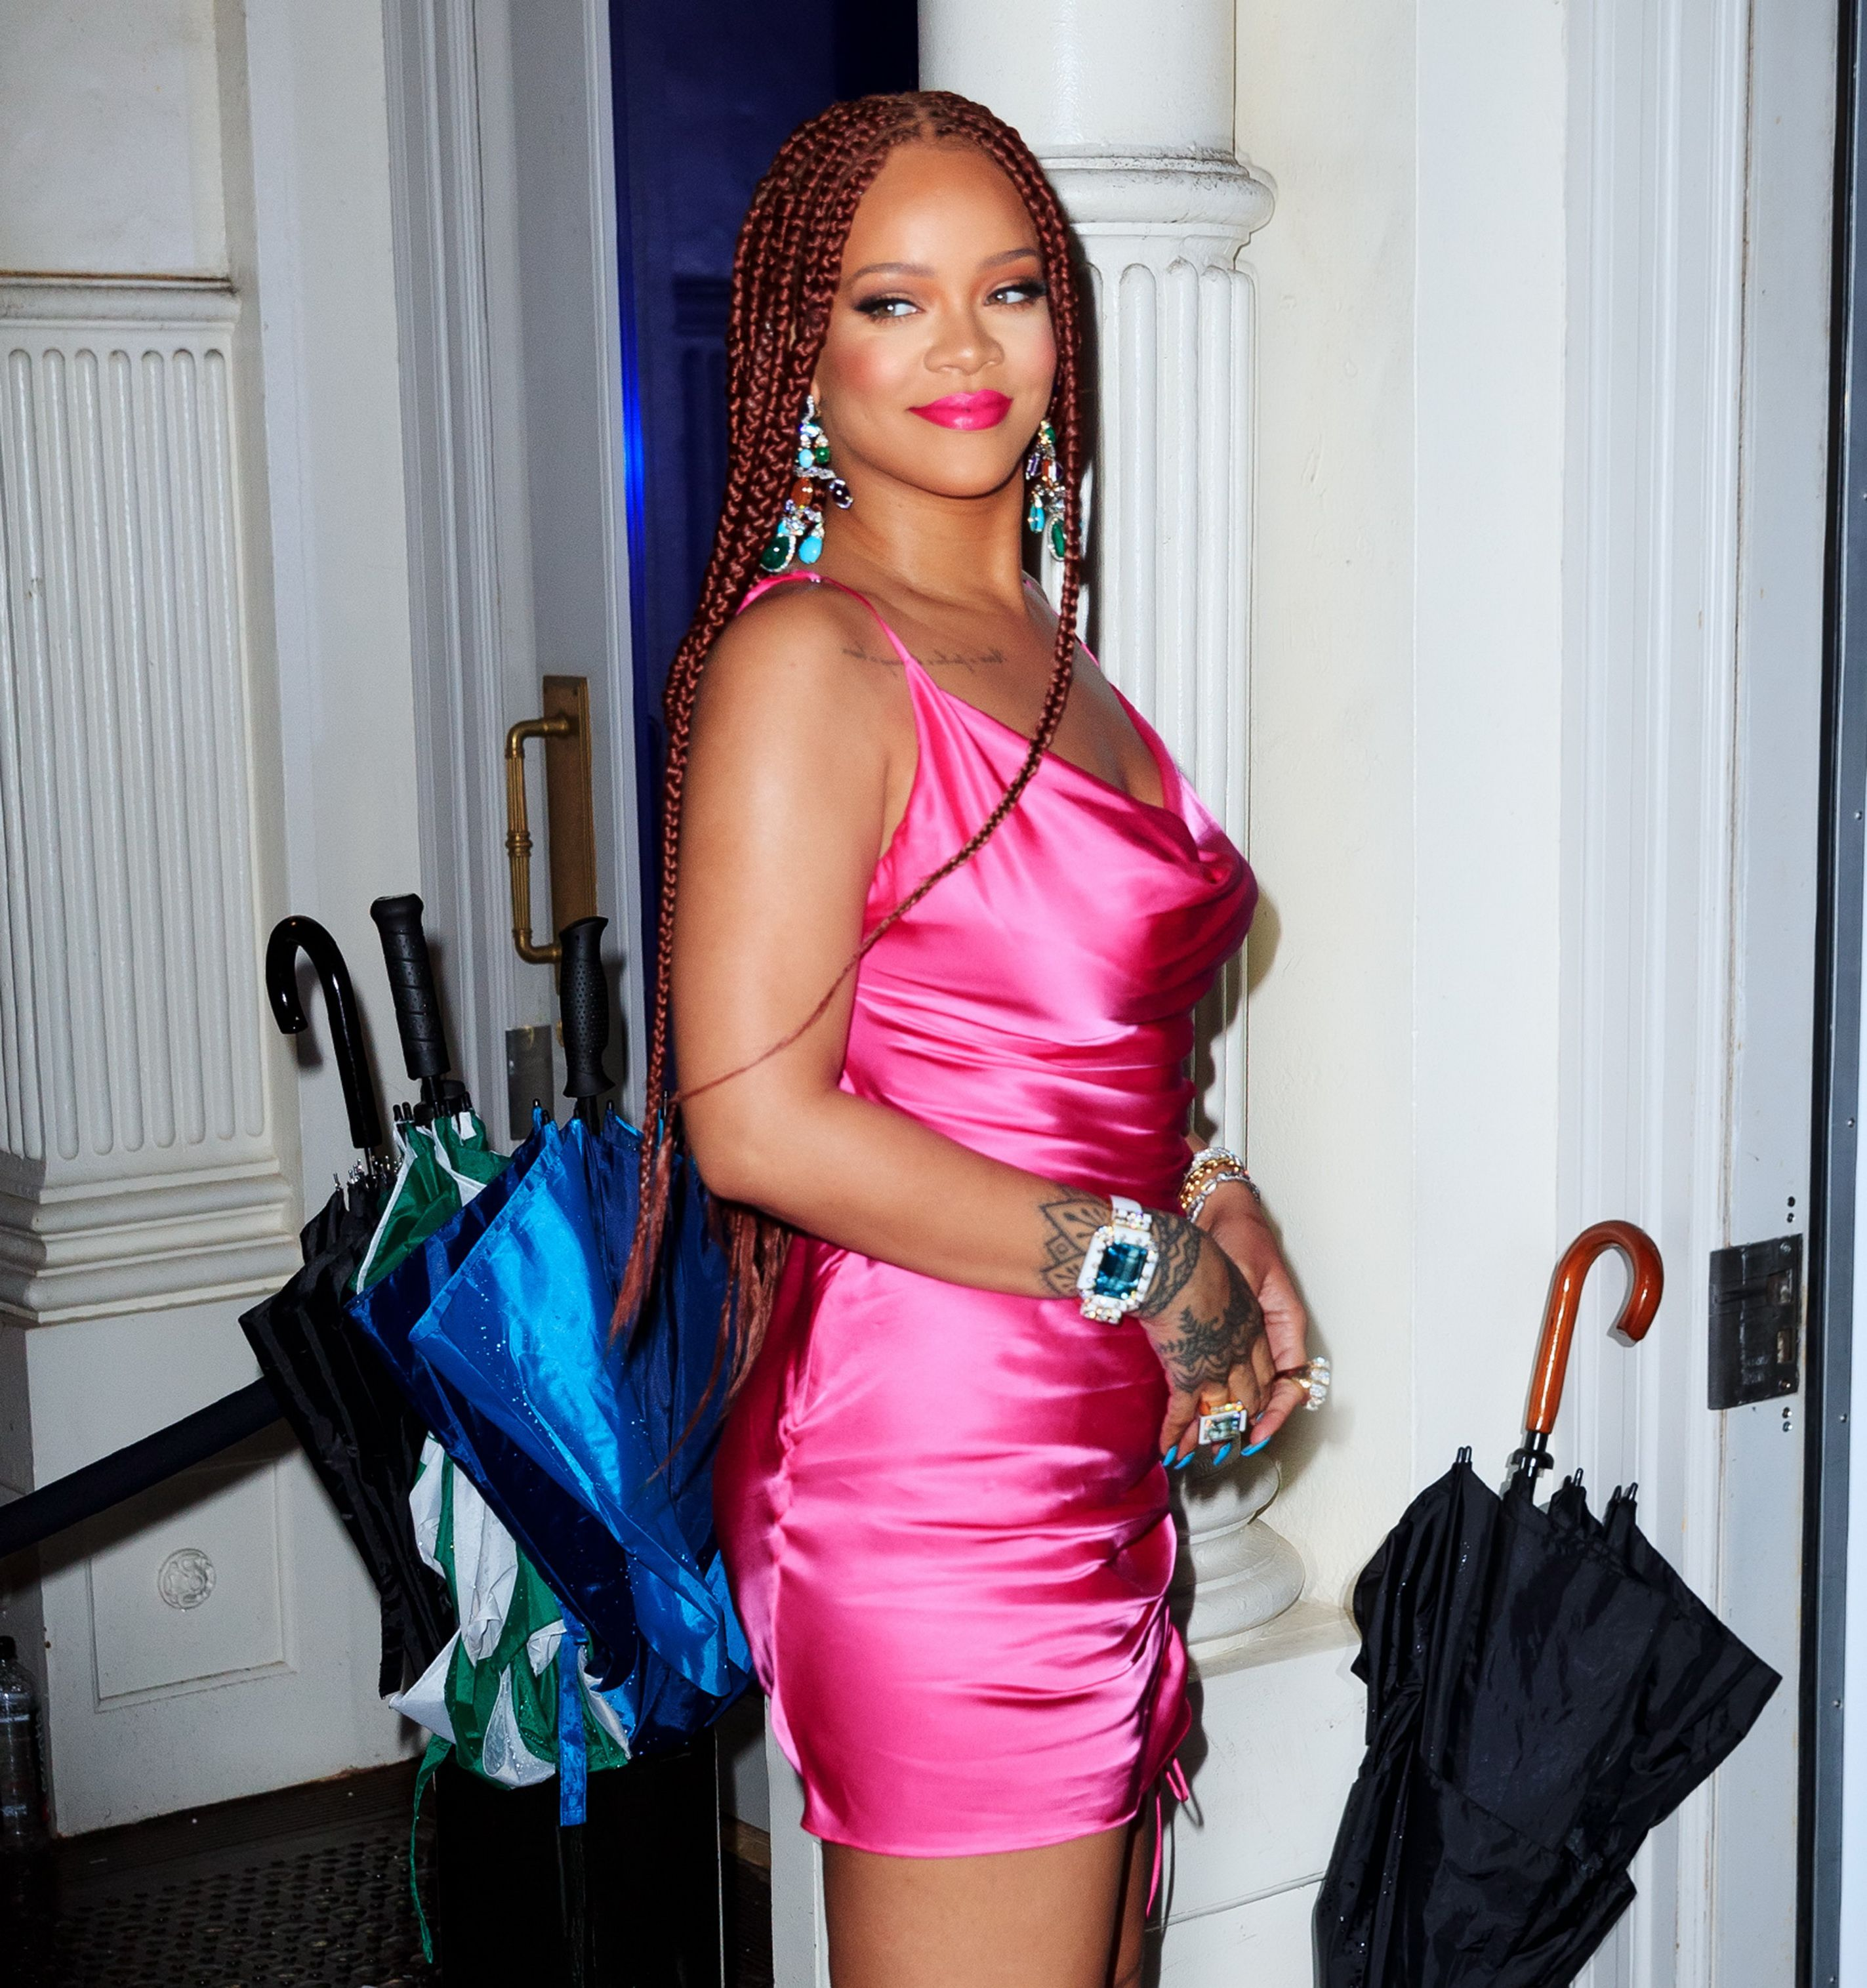 Rihanna Celebrated Her Fenty Pop-Up in an Excellent Pink Mini Party Dress